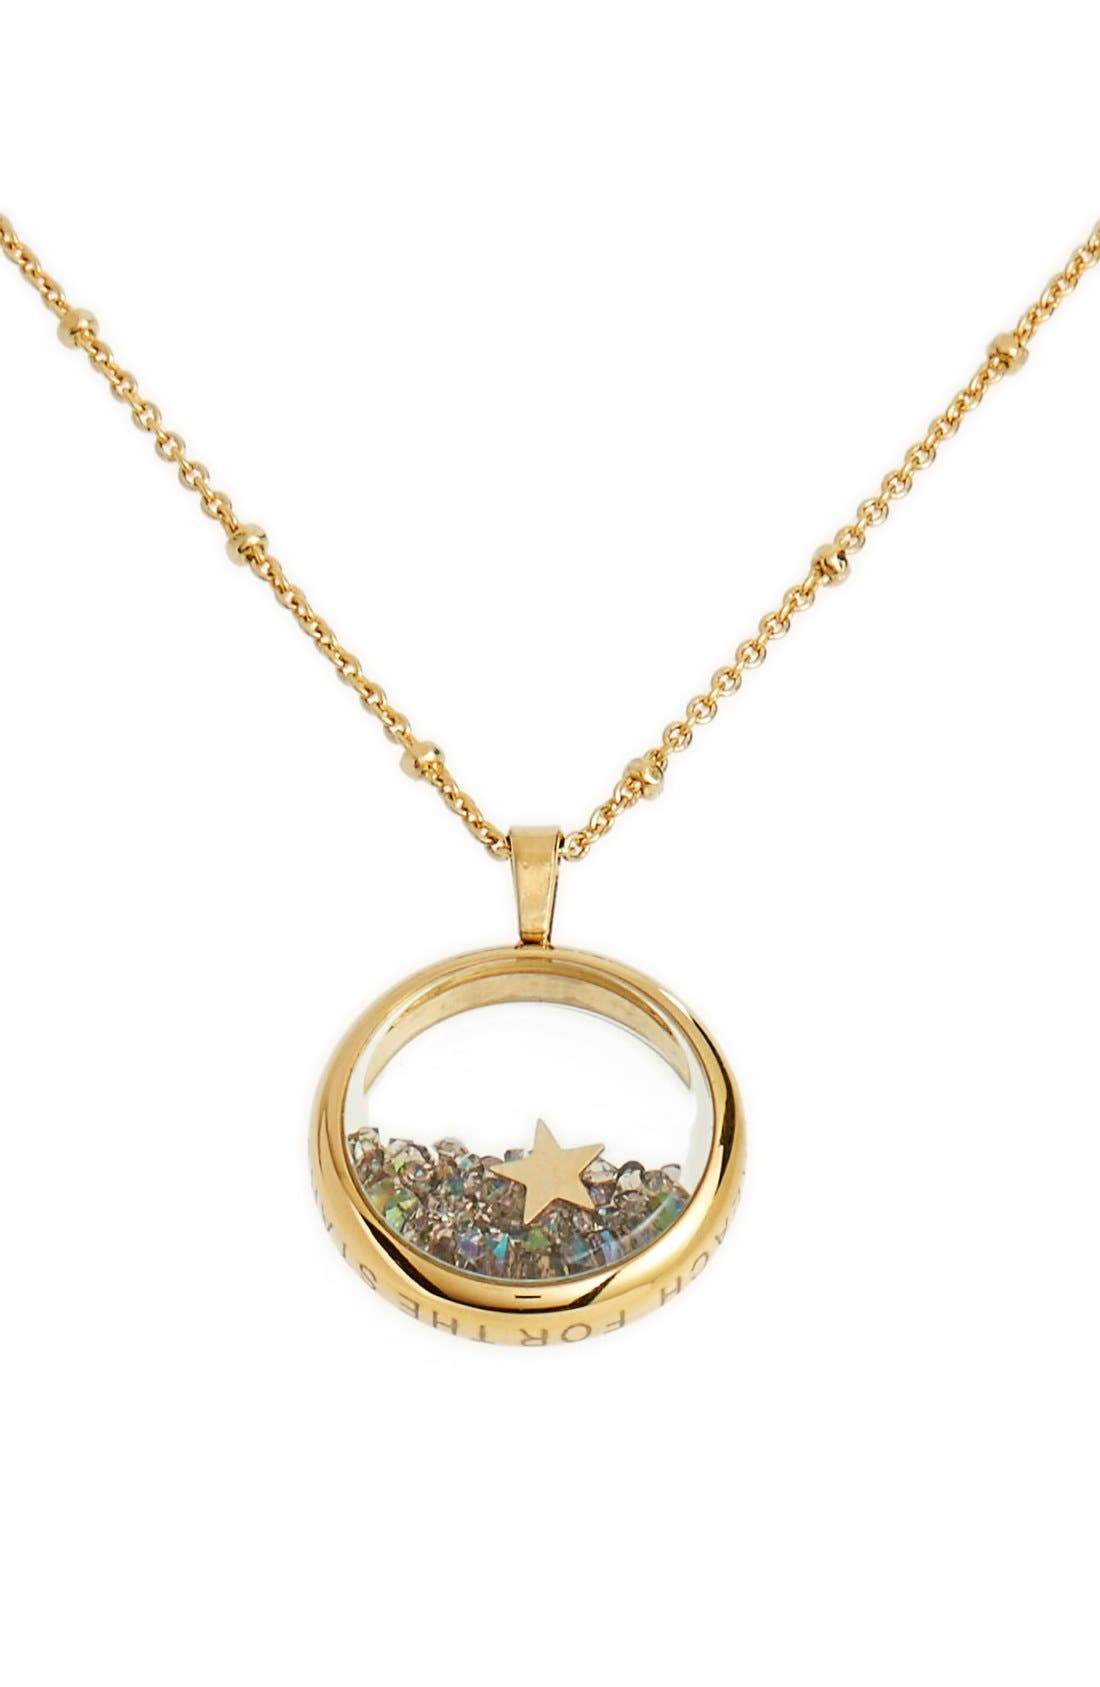 Main Image - kate spade new york 'reach for the stars' pendant necklace